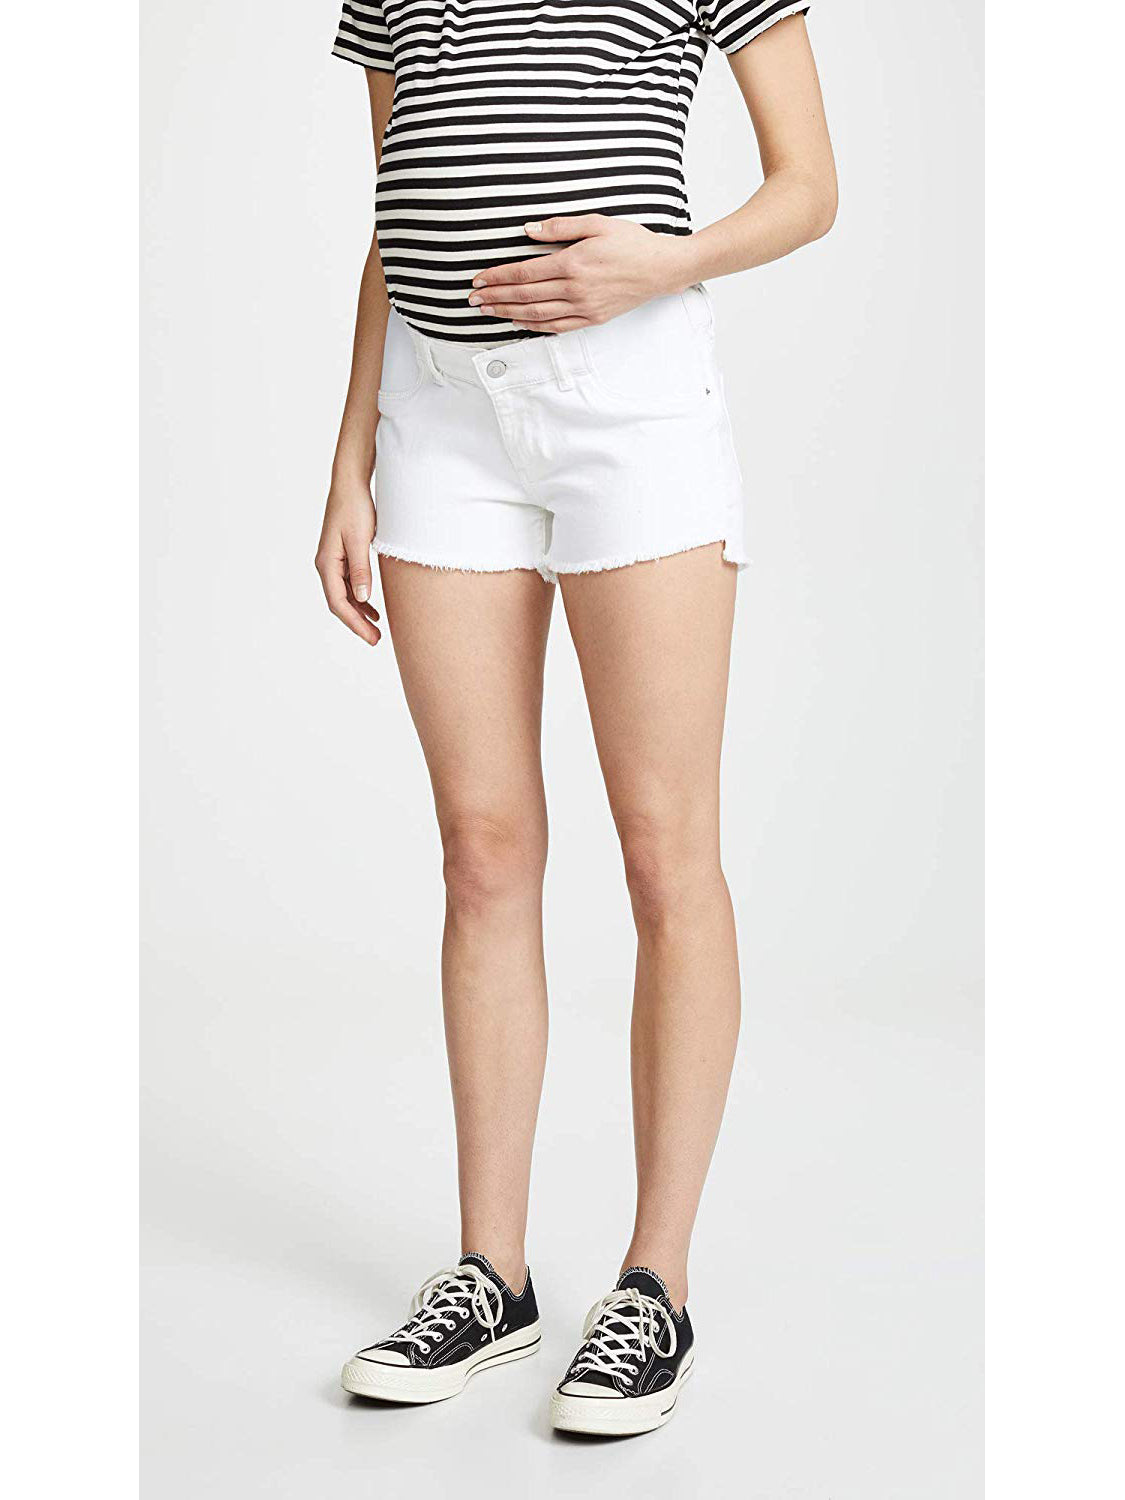 TILDEN | DL1961 Renee Maternity Jean Shorts - Precision